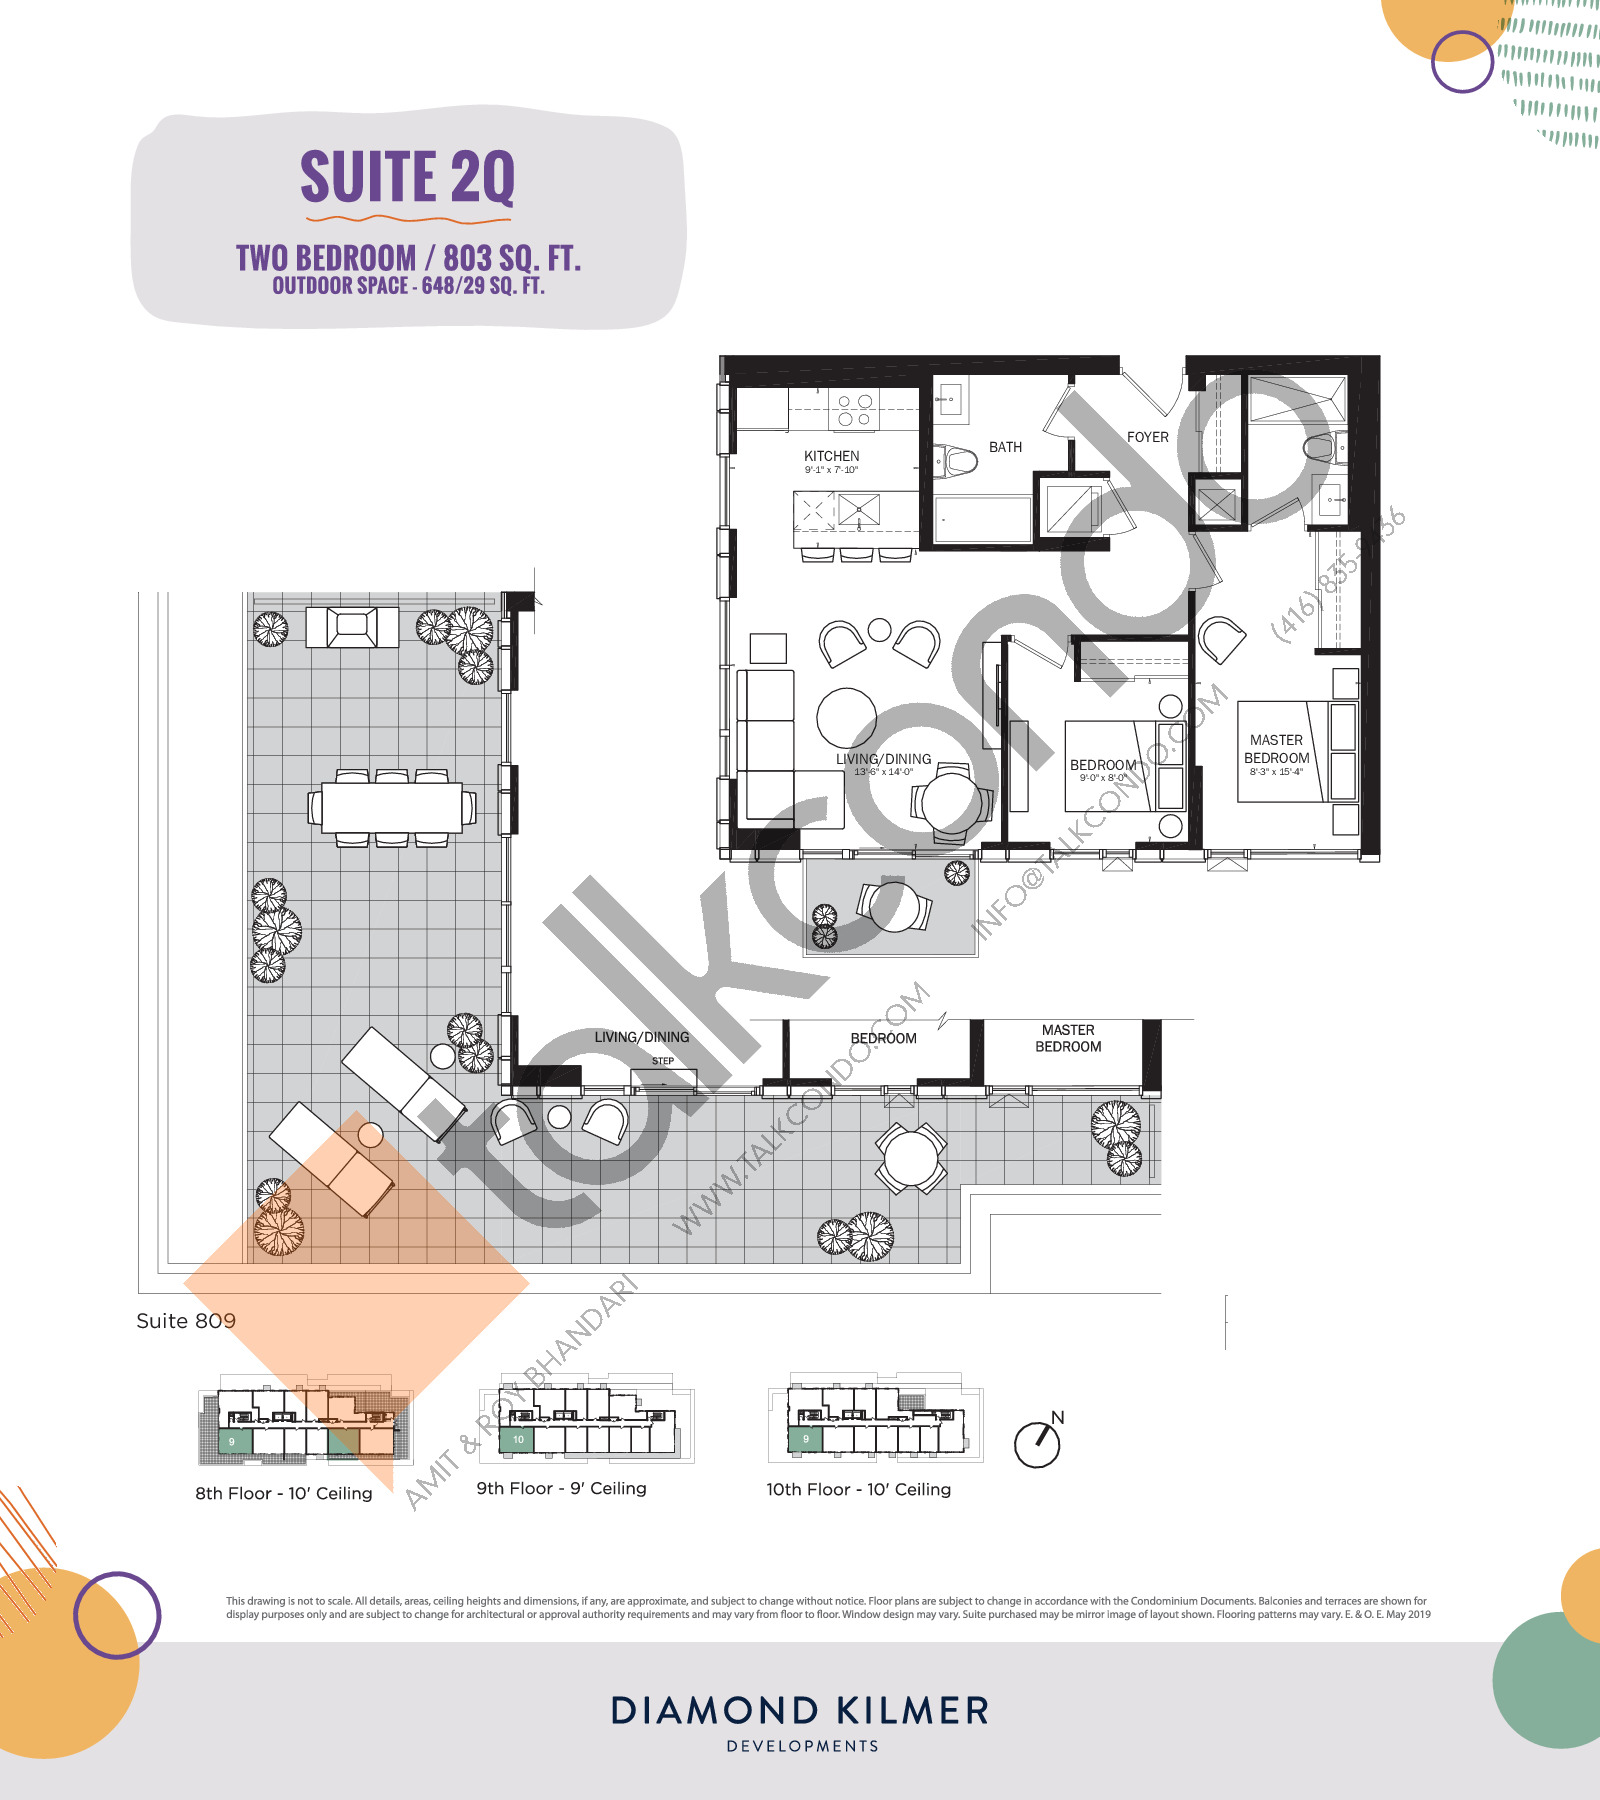 2Q Floor Plan at Reunion Crossing Condos & Urban Towns - 803 sq.ft